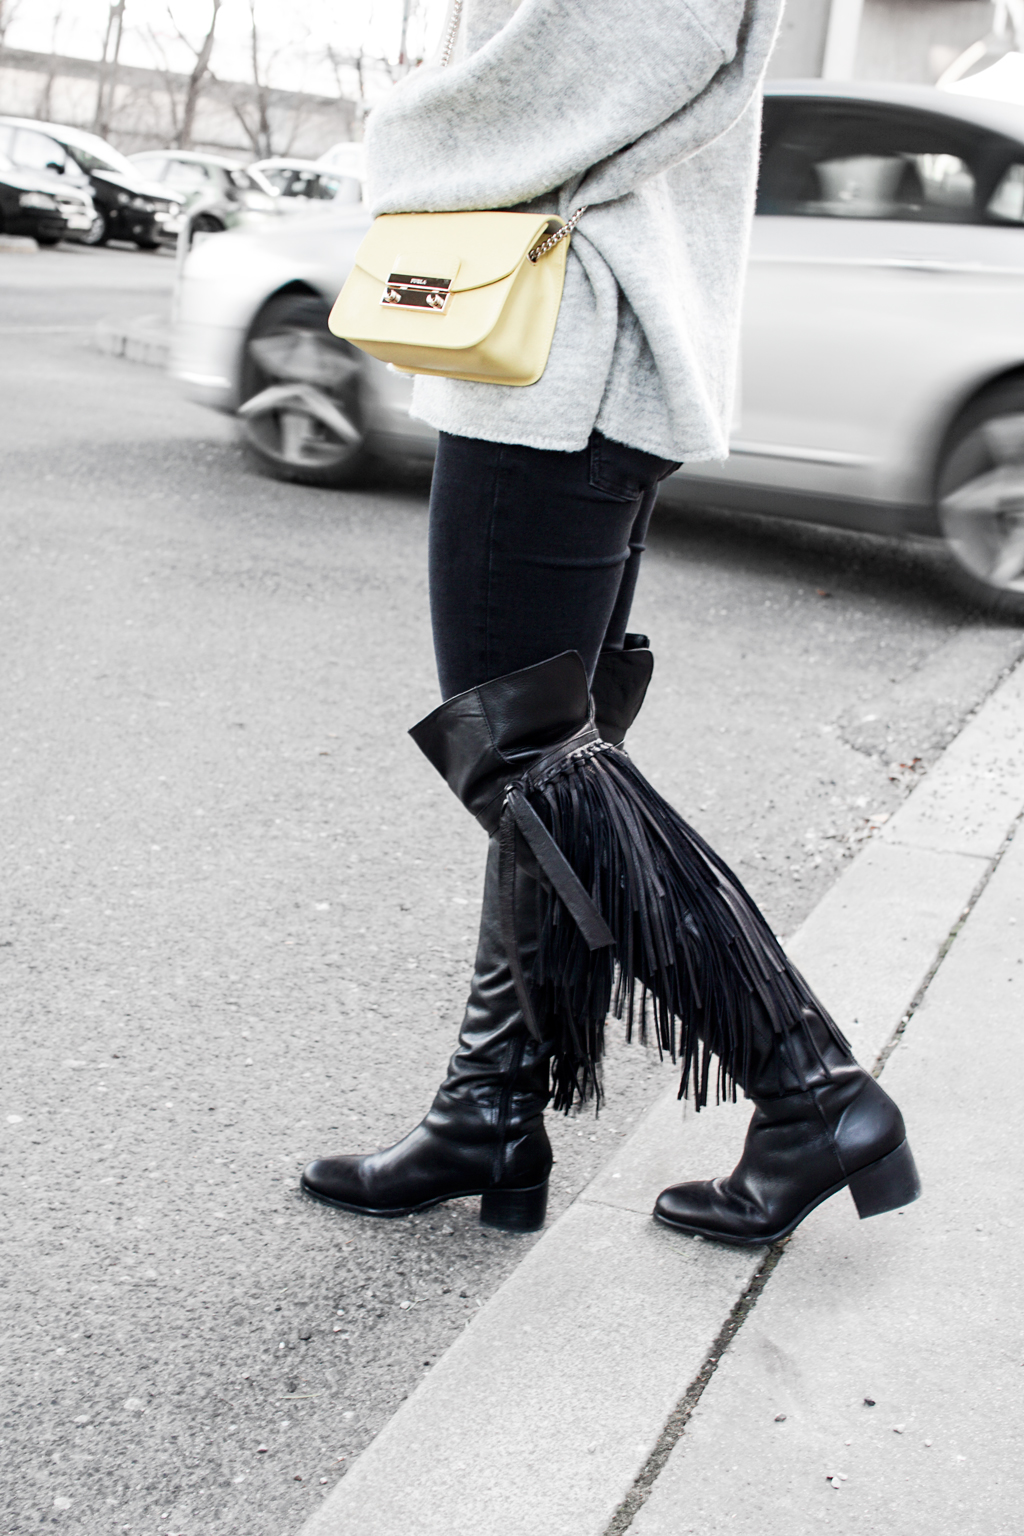 How to take outfit photos in the winter. Furla Metropolis Bag, Oversized Sweater, Overknee Boots